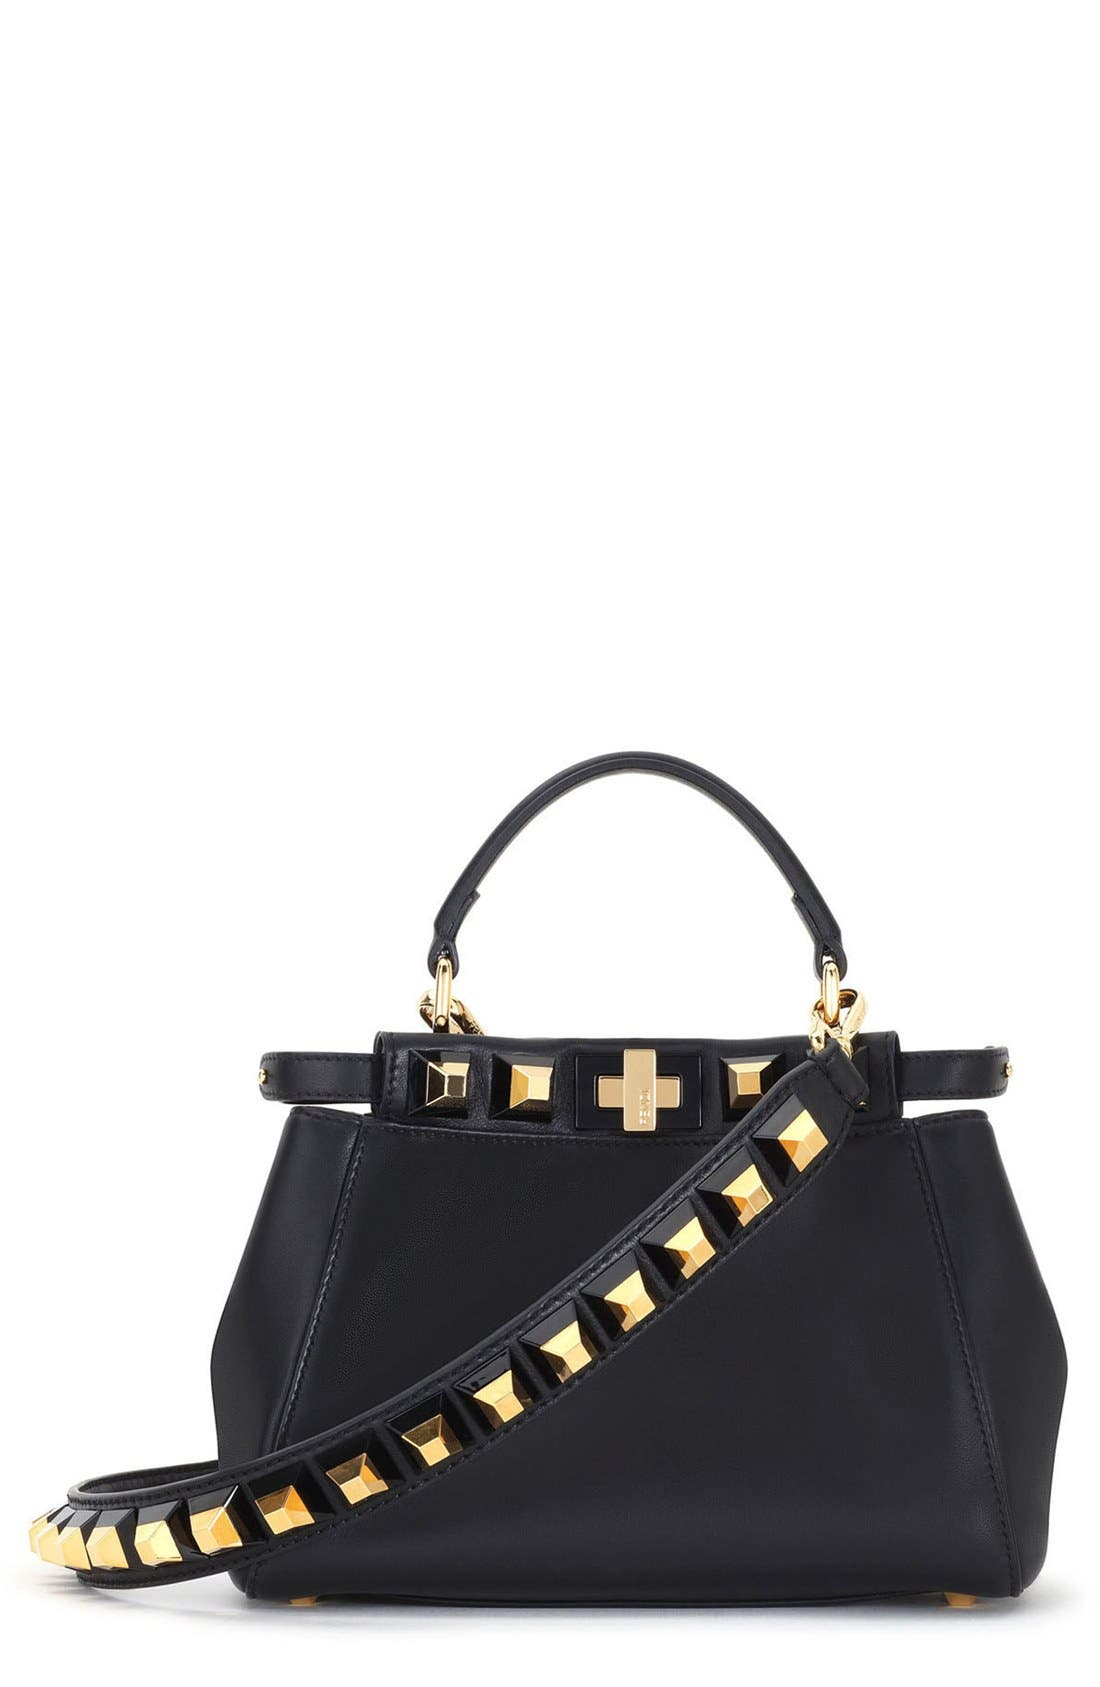 Main Image - Fendi Mini Peekaboo Studded Leather Bag